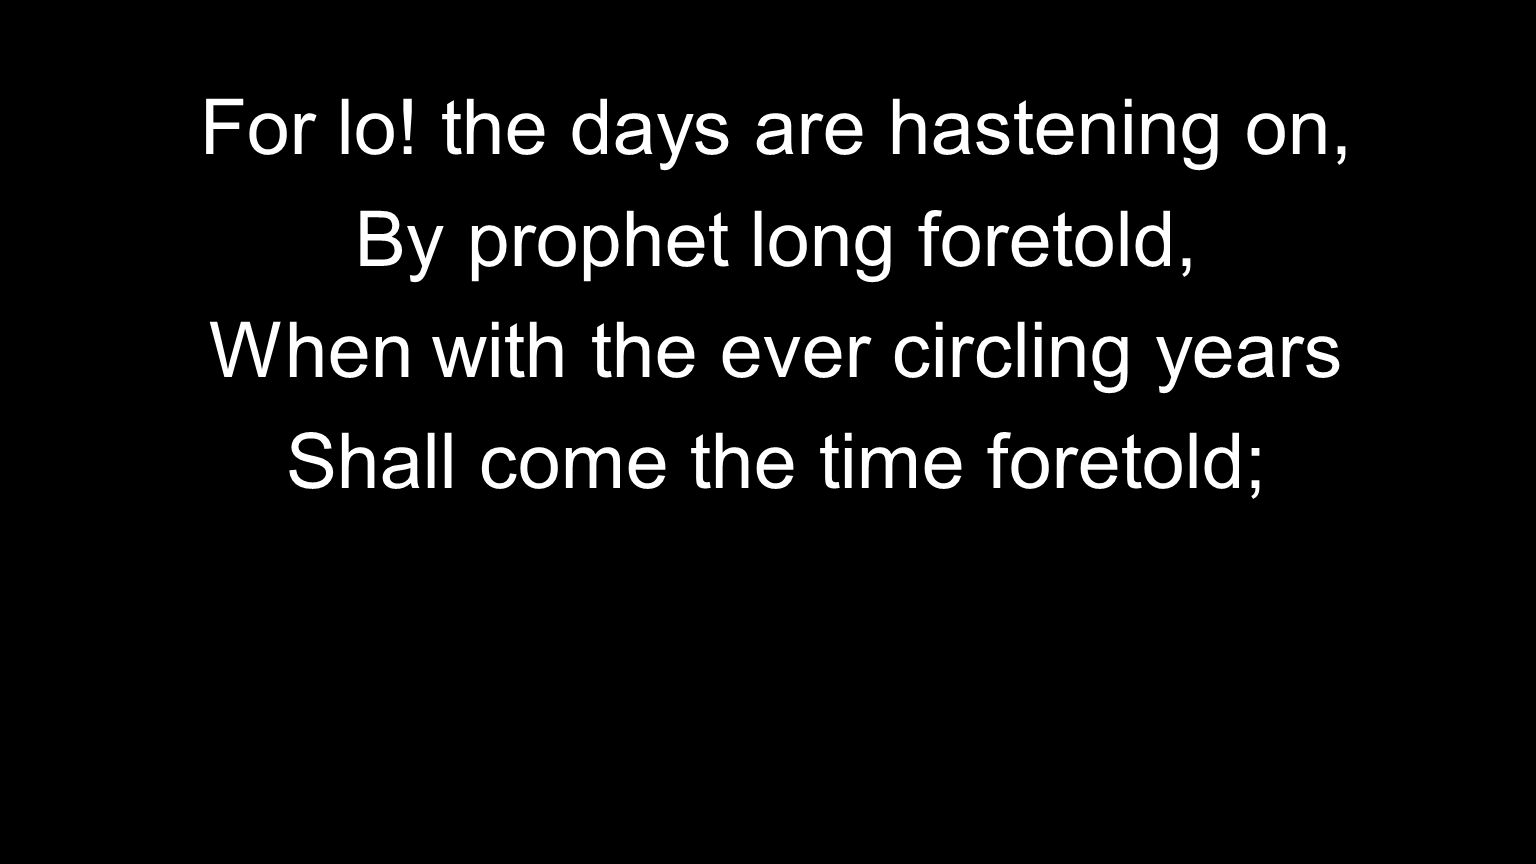 For lo! the days are hastening on, By prophet long foretold, When with the ever circling years Shall come the time foretold;